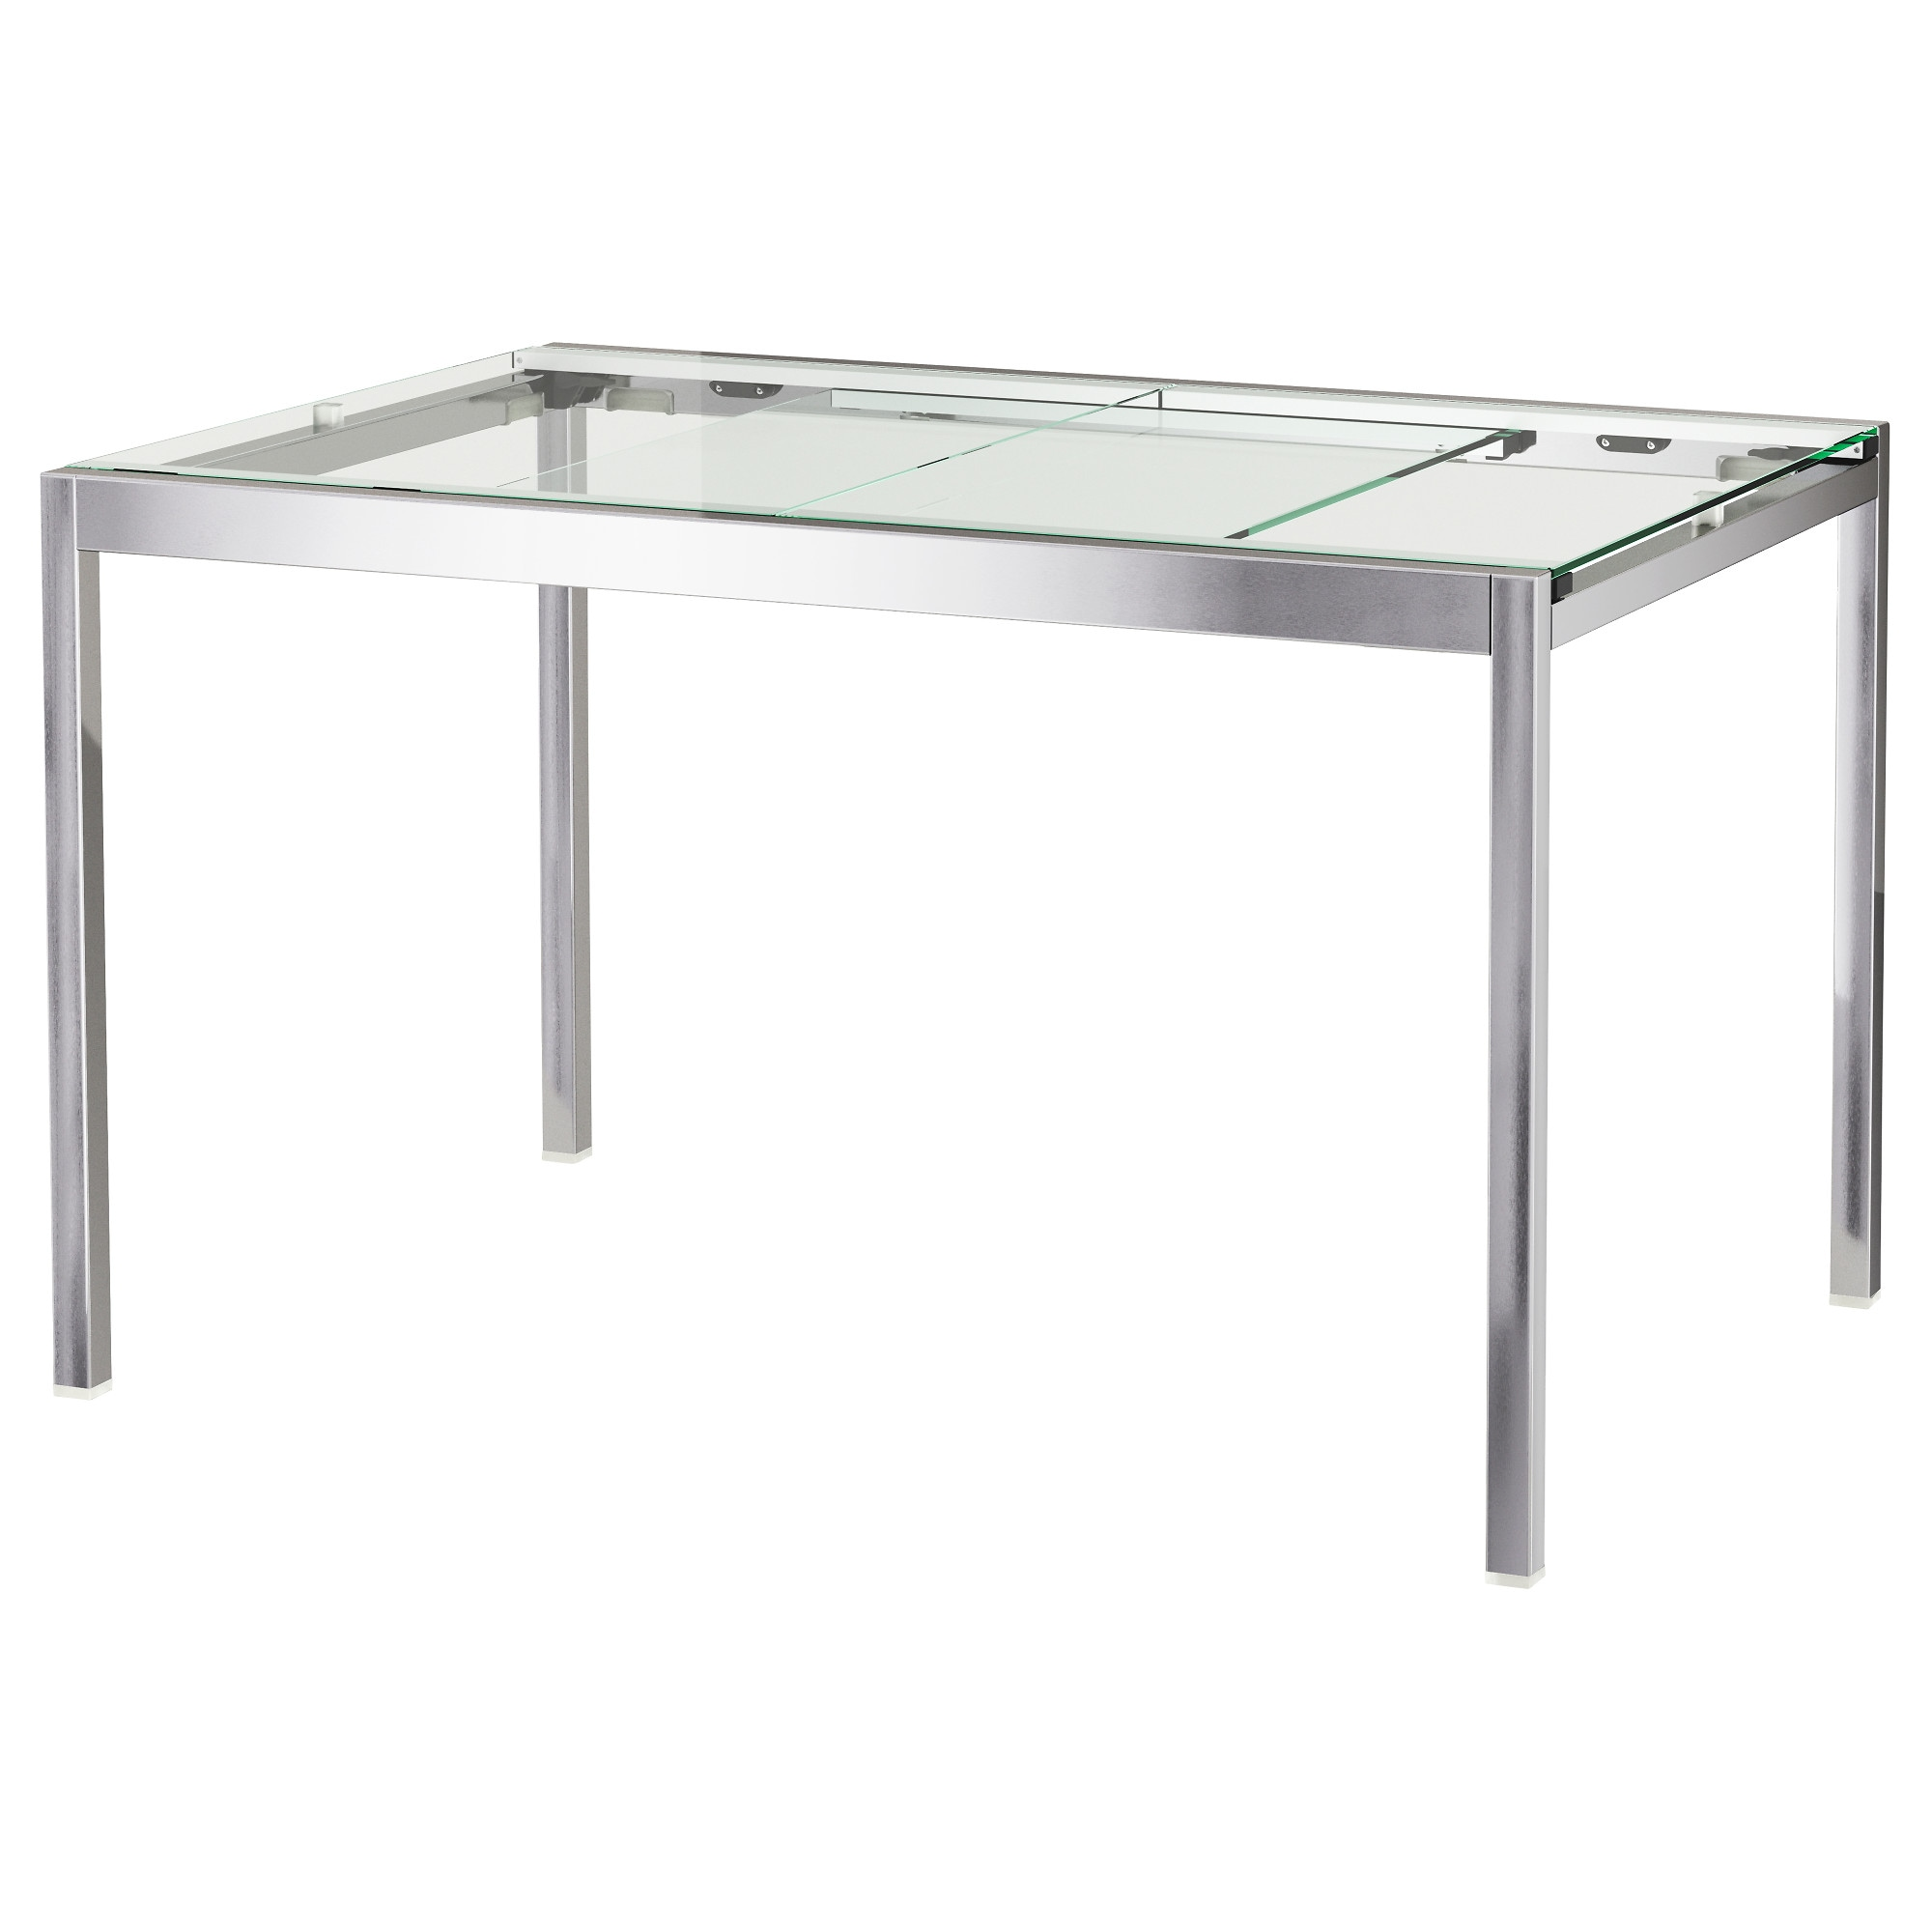 Table ronde en verre ikea for Table verre ikea